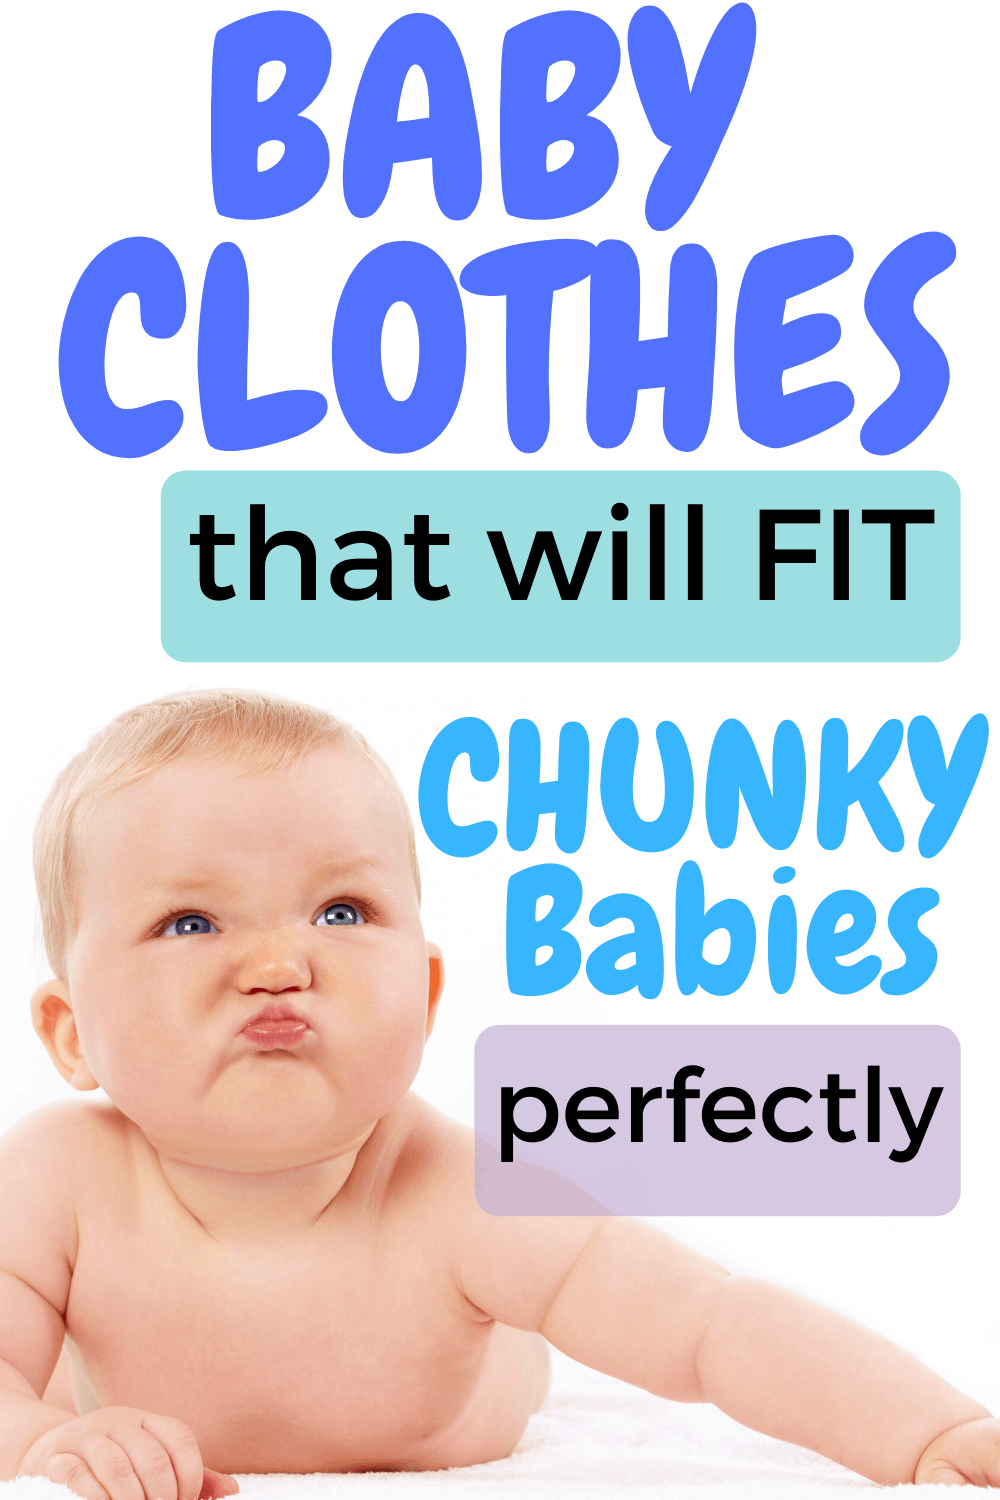 Baby Clothes for Chunky Babies that are cute and will fit right. Baby can finally be comfortable!